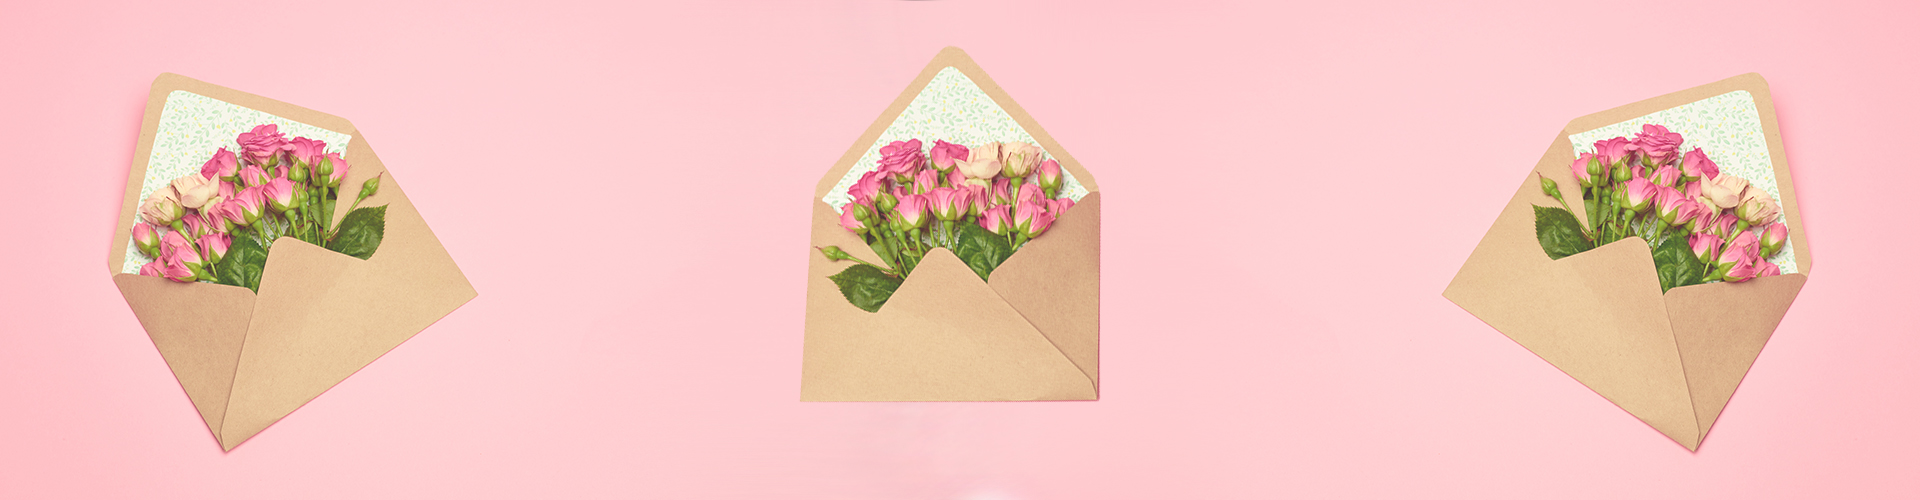 roses tucked inside an envelope with pink background